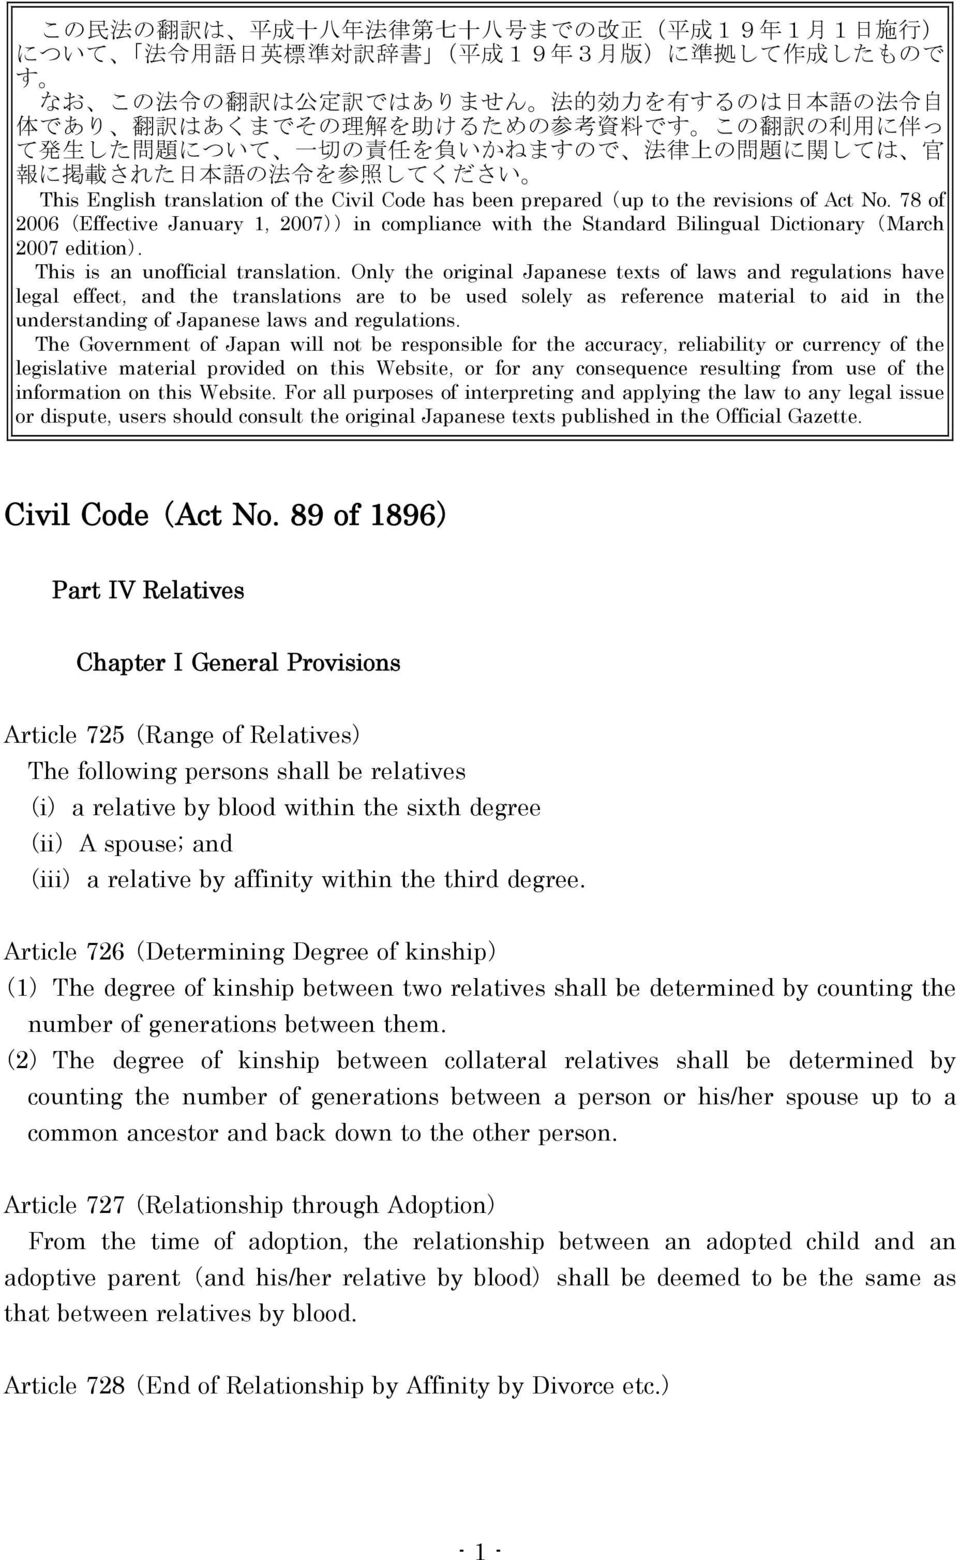 Civil Code has been prepared ( up to the revisions of Act No. 78 of 2006 ( Effective January 1, 2007)) in compliance with the Standard Bilingual Dictionary ( March 2007 edition ).